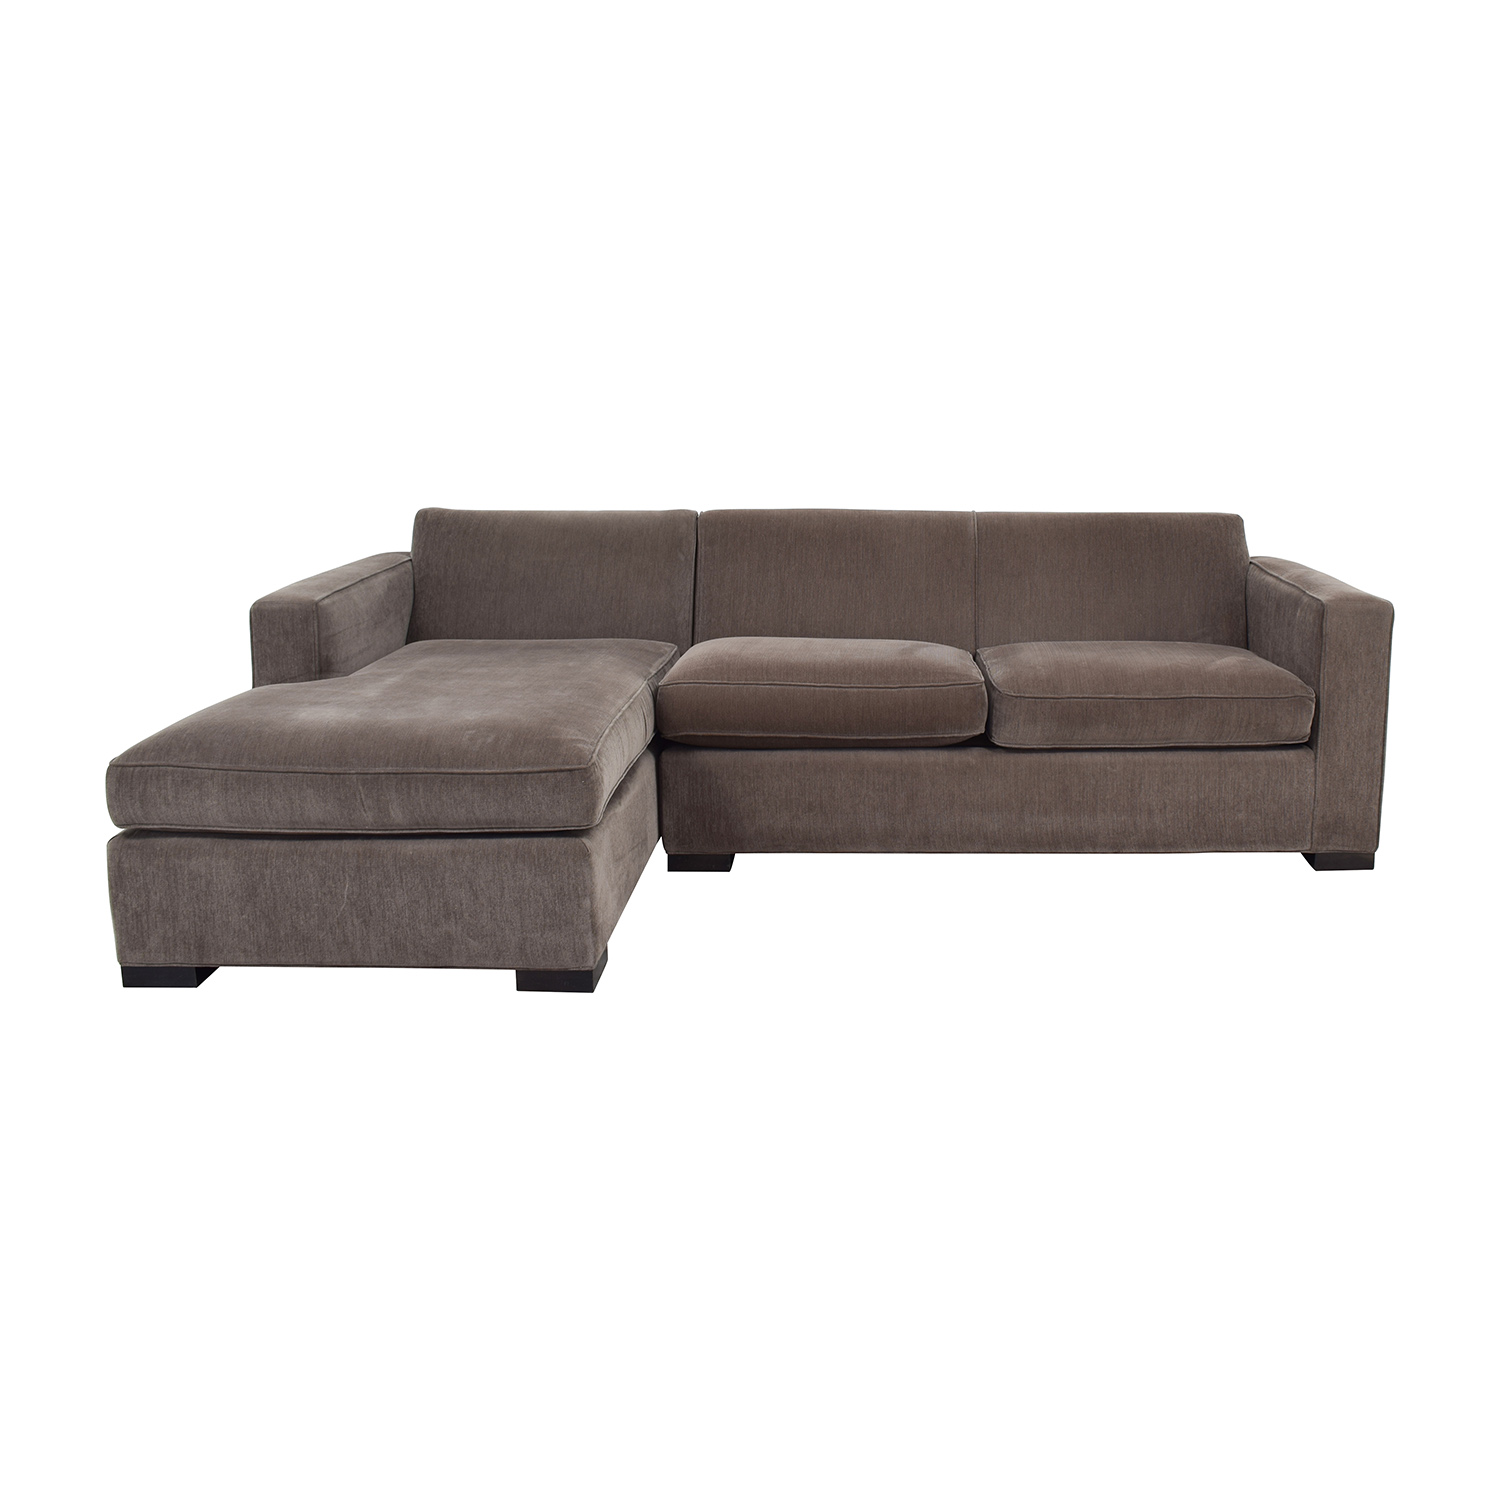 Room & Board Room & Board Ian Grey Sectional used